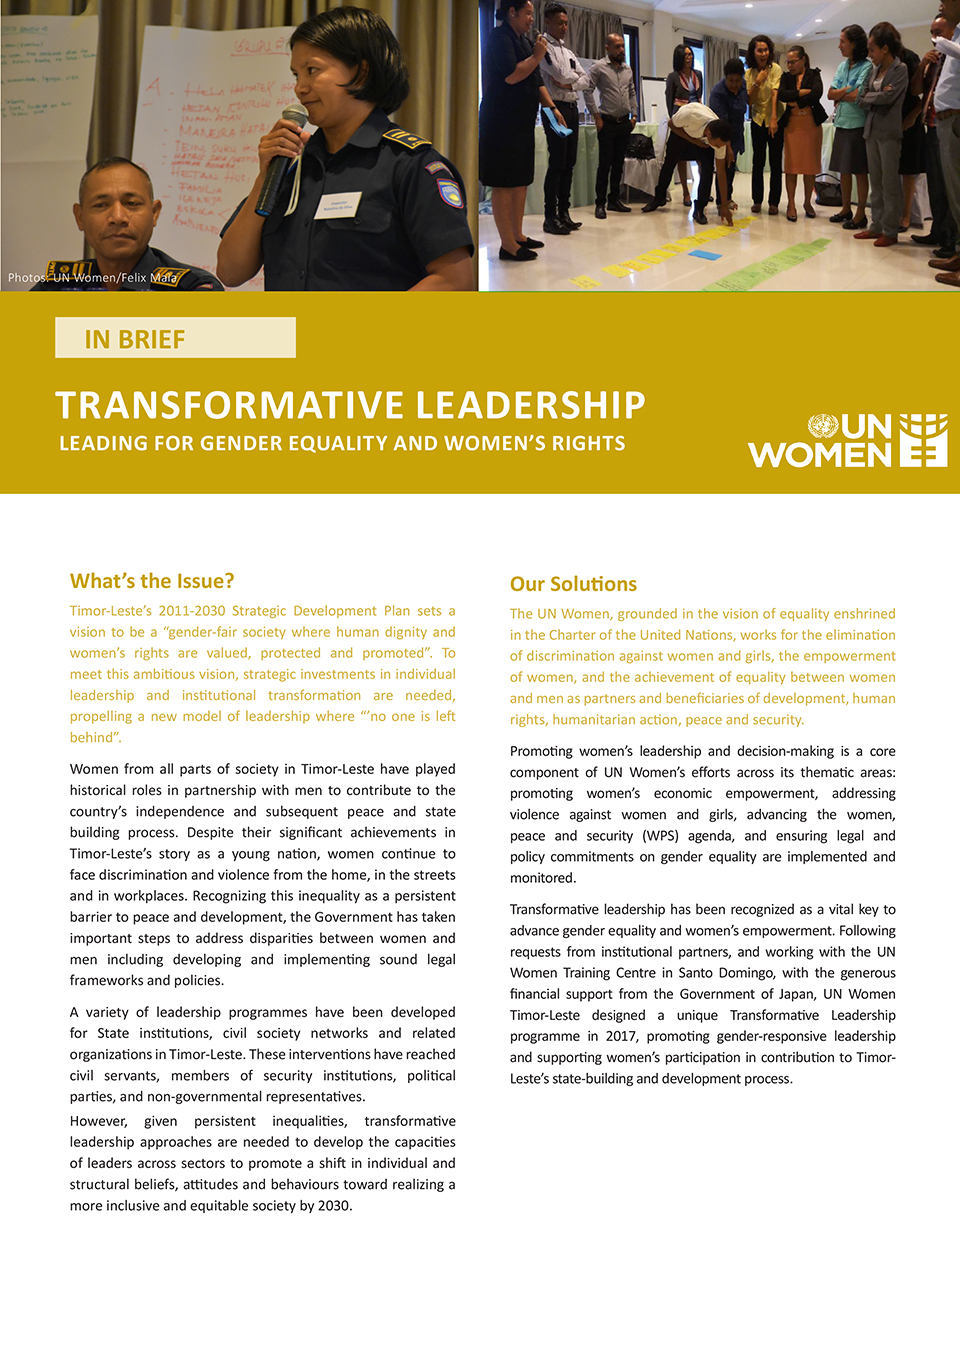 Transformative Leadership and Gender Equality